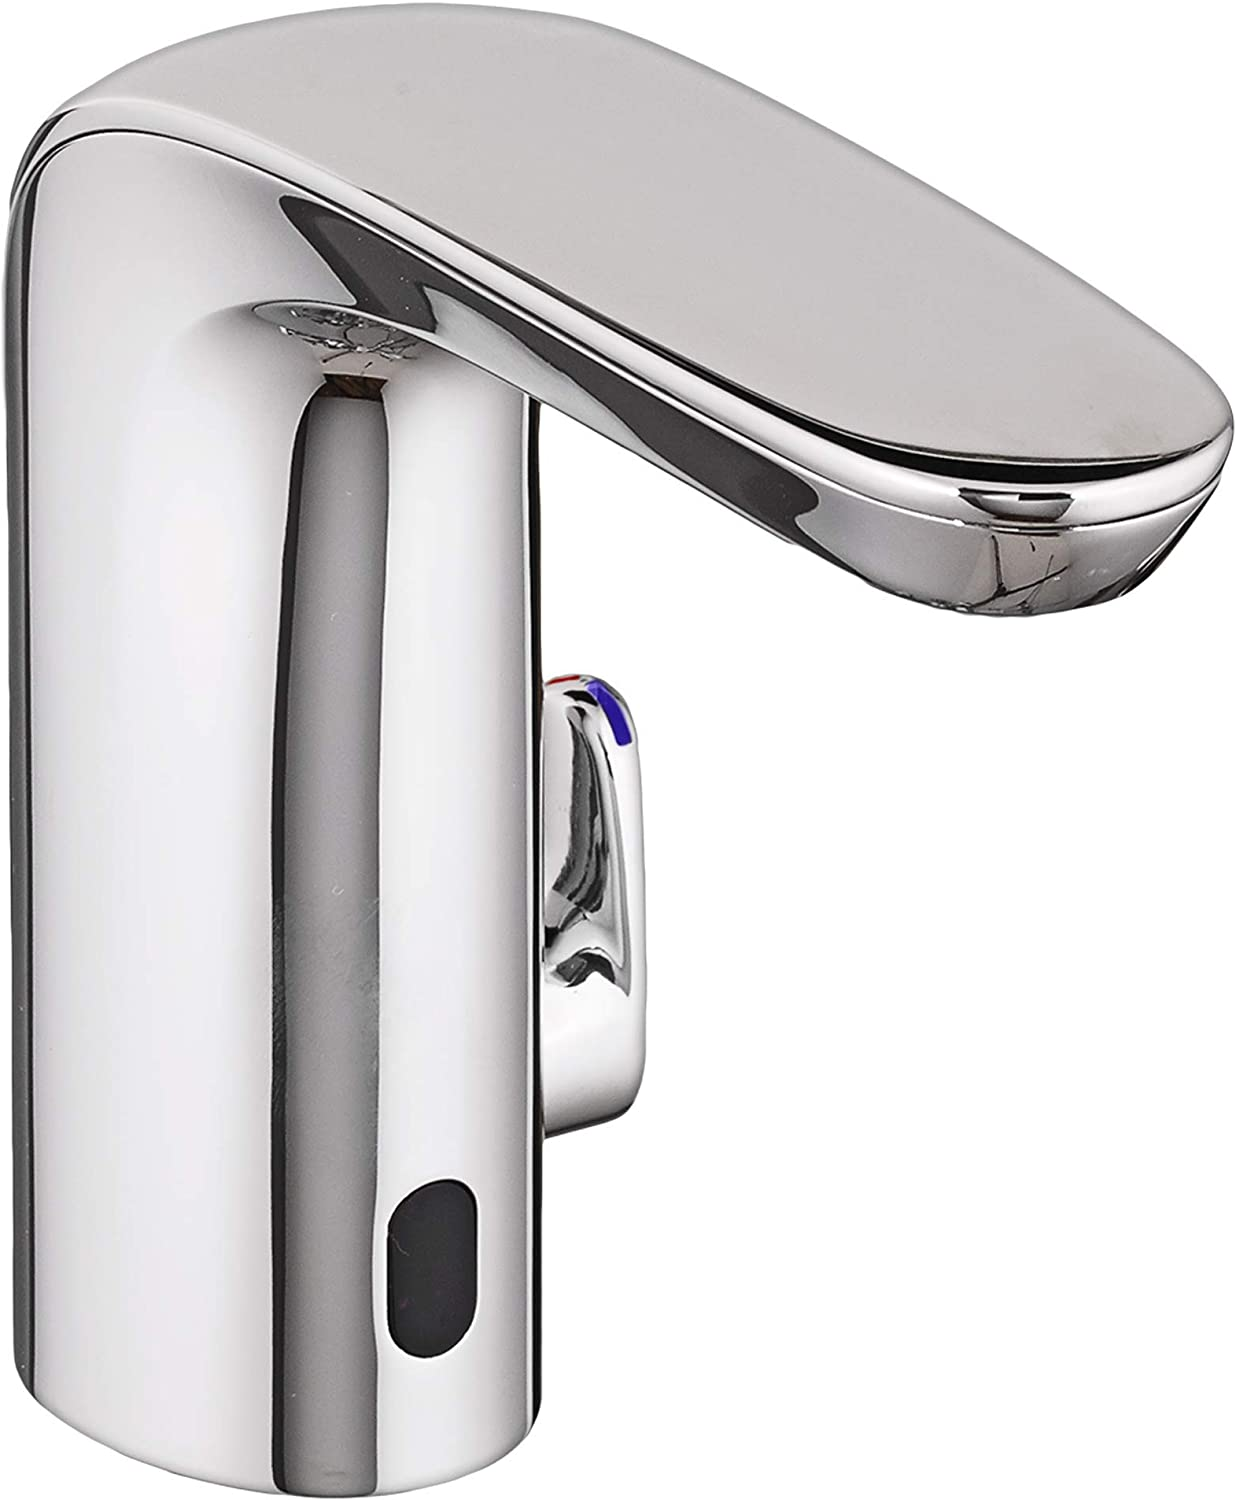 American Standard 775B205.002 NextGen Selectronic Integrated Faucet with Above-Deck Mixing, 0.5 gpm, Polished Chrome: Home Improvement